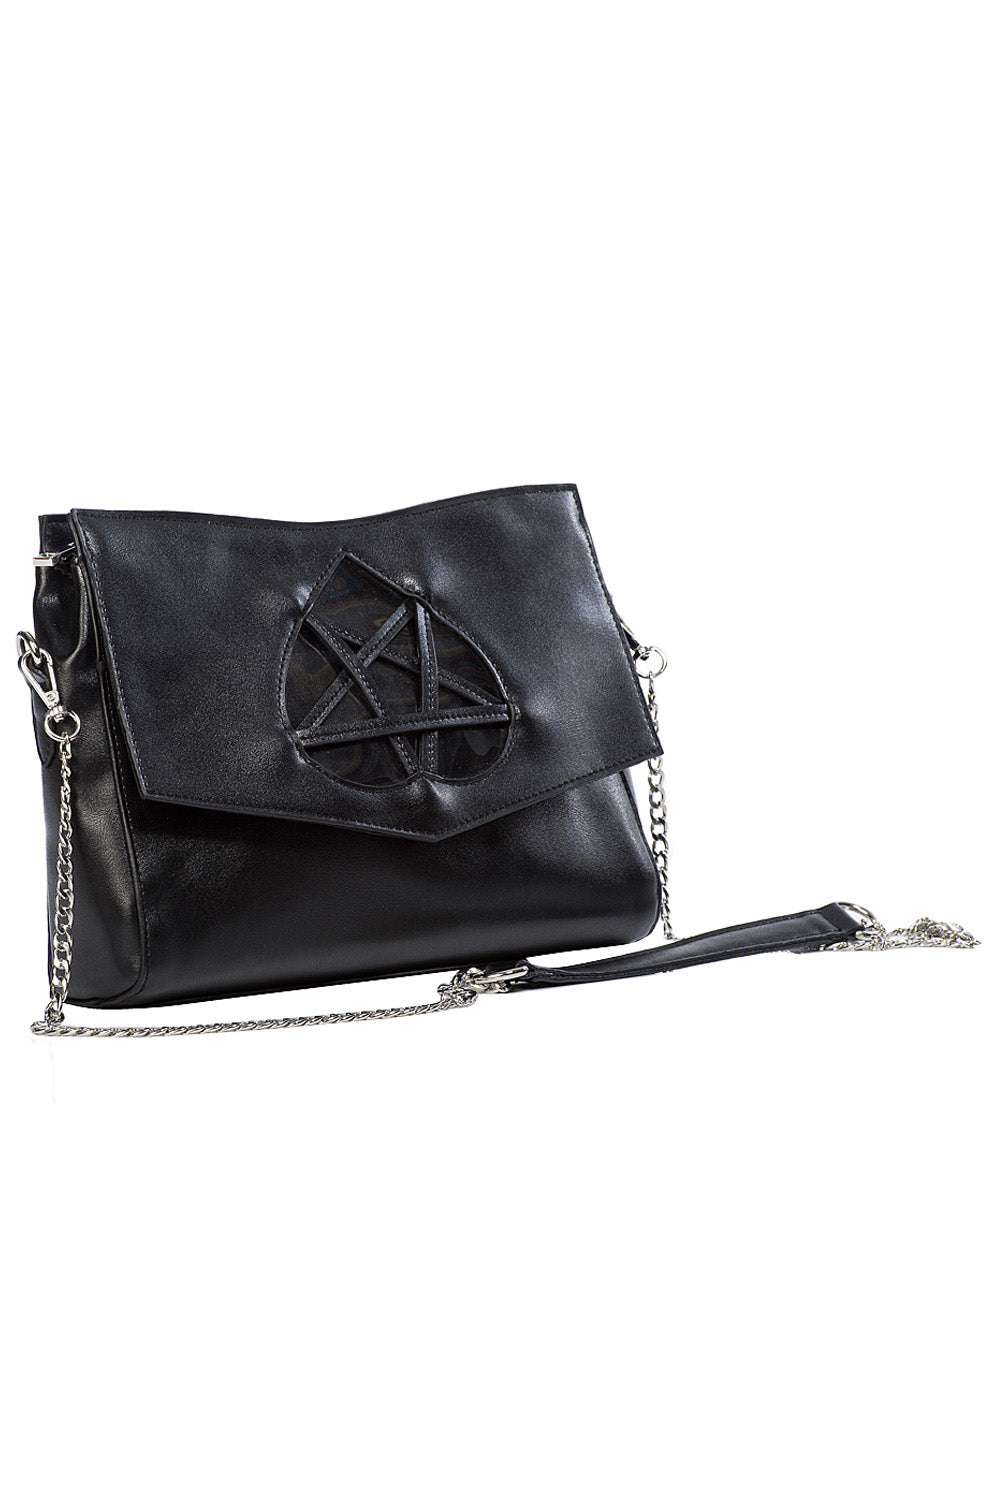 Flash Of Twilight Shoulder Bag